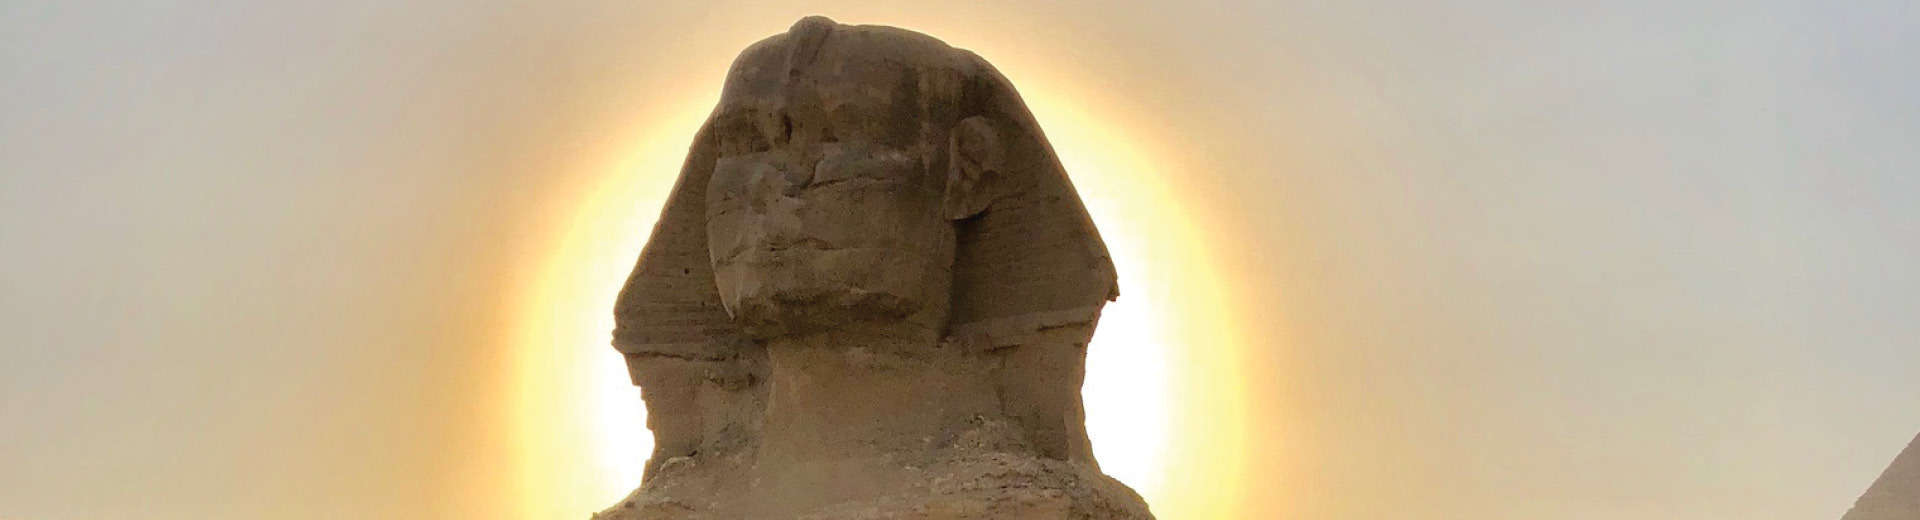 treasures of egypt 2019 sphinx